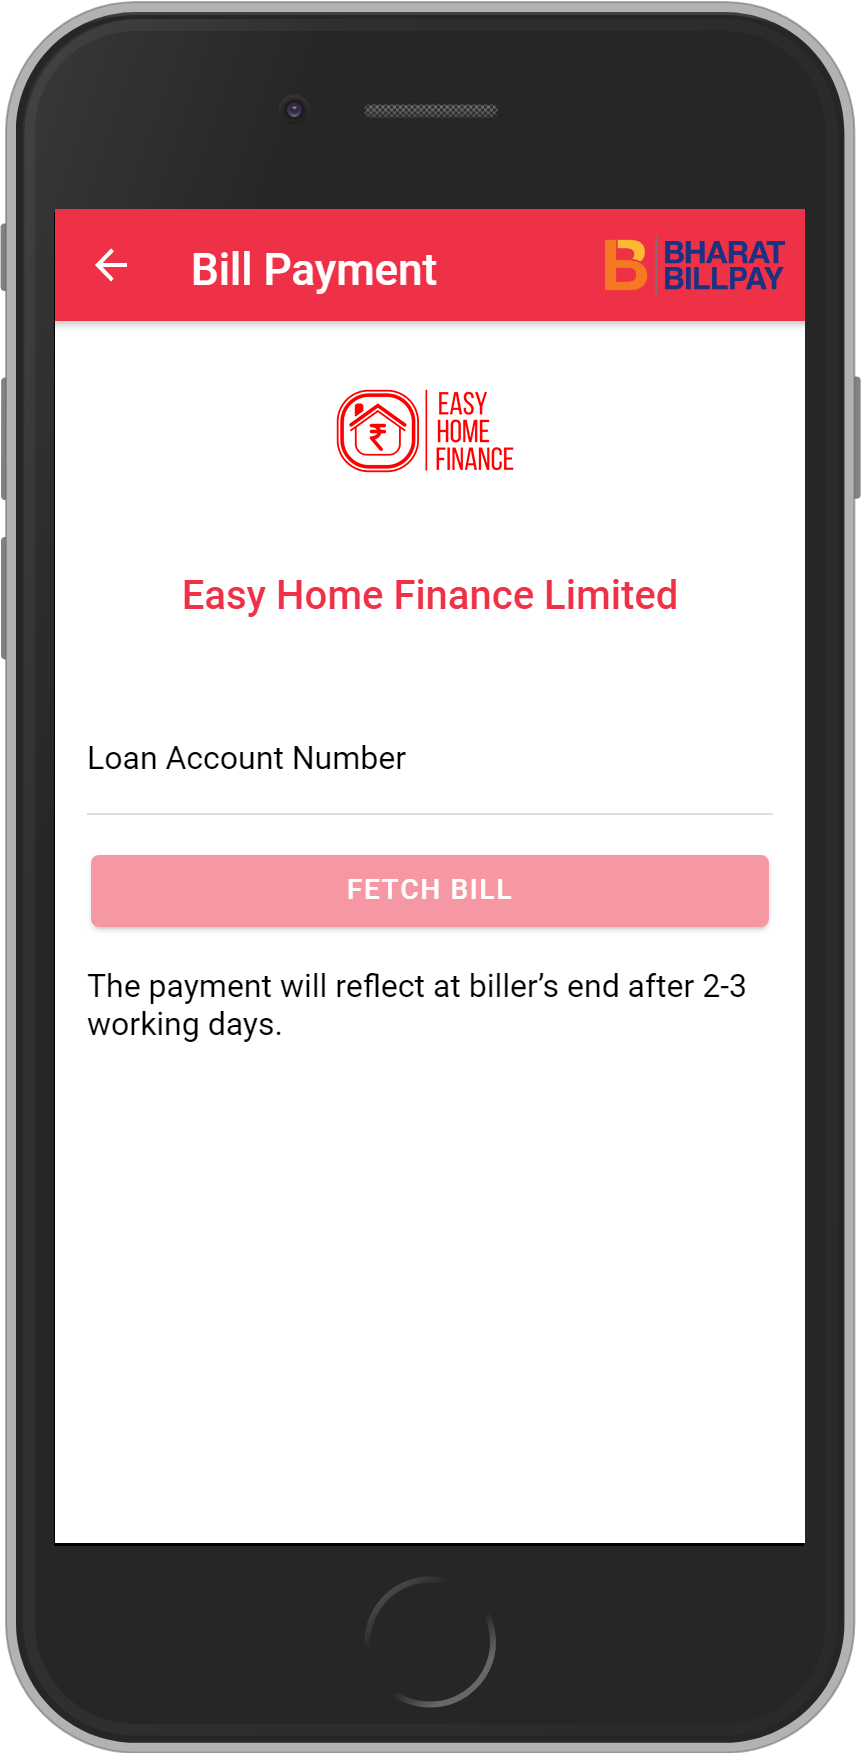 Get UNLIMITED <b>0.1%</b> CASHBACK on Easy Home Finance Limited Loan Payment.